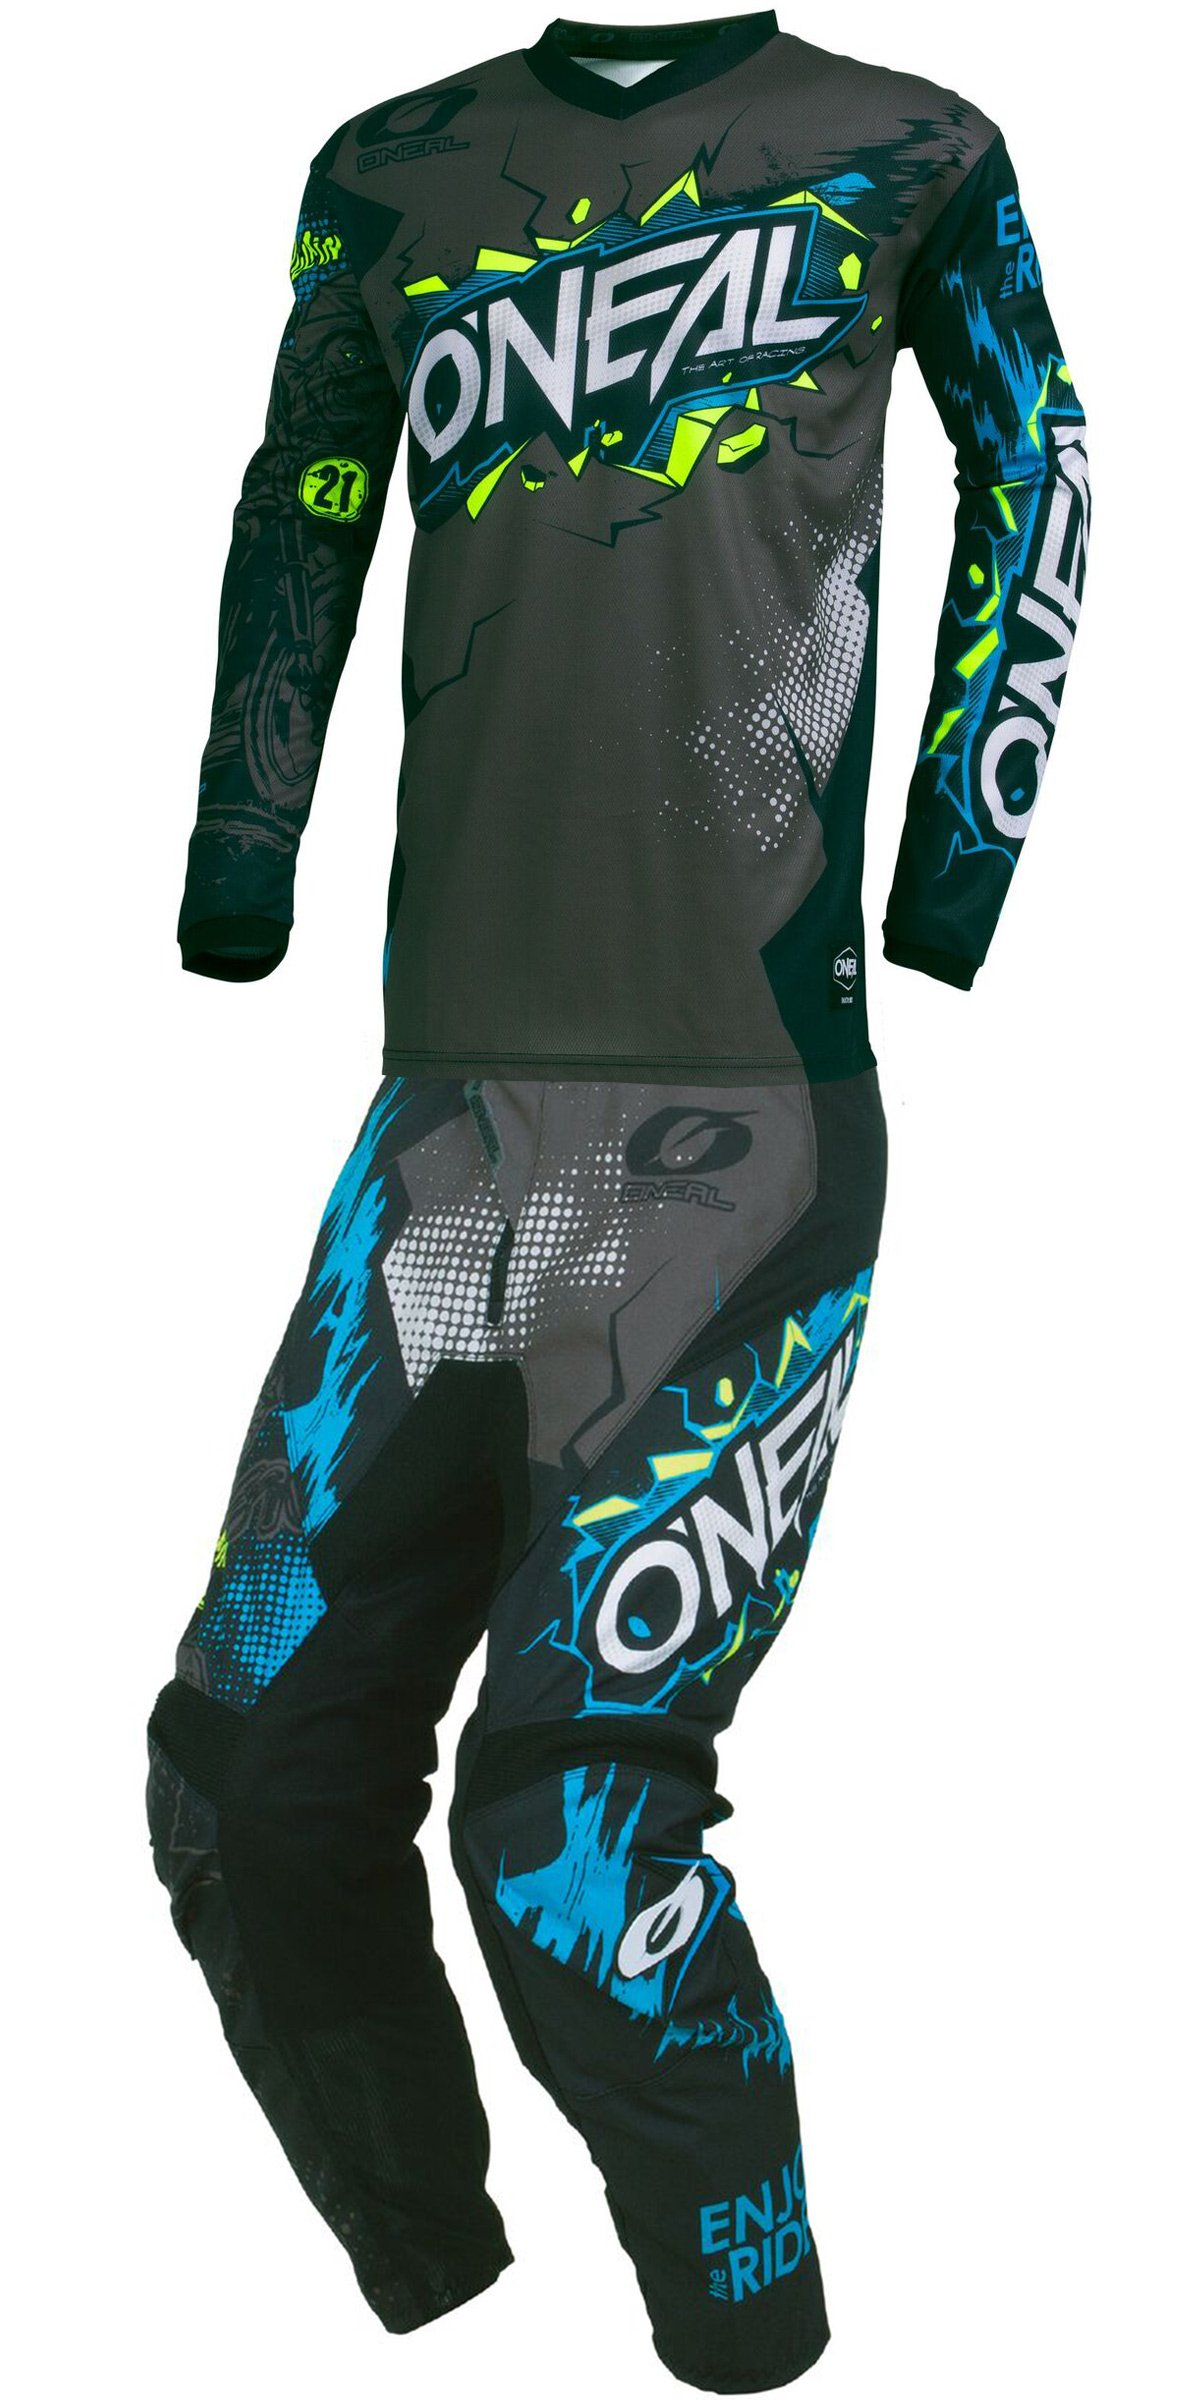 O'Neal - 2019 Element Villain (Mens Grey & Black Medium/32W) MX Riding Gear Combo Set, Motocross Off-Road Dirt Bike Jersey & Pant